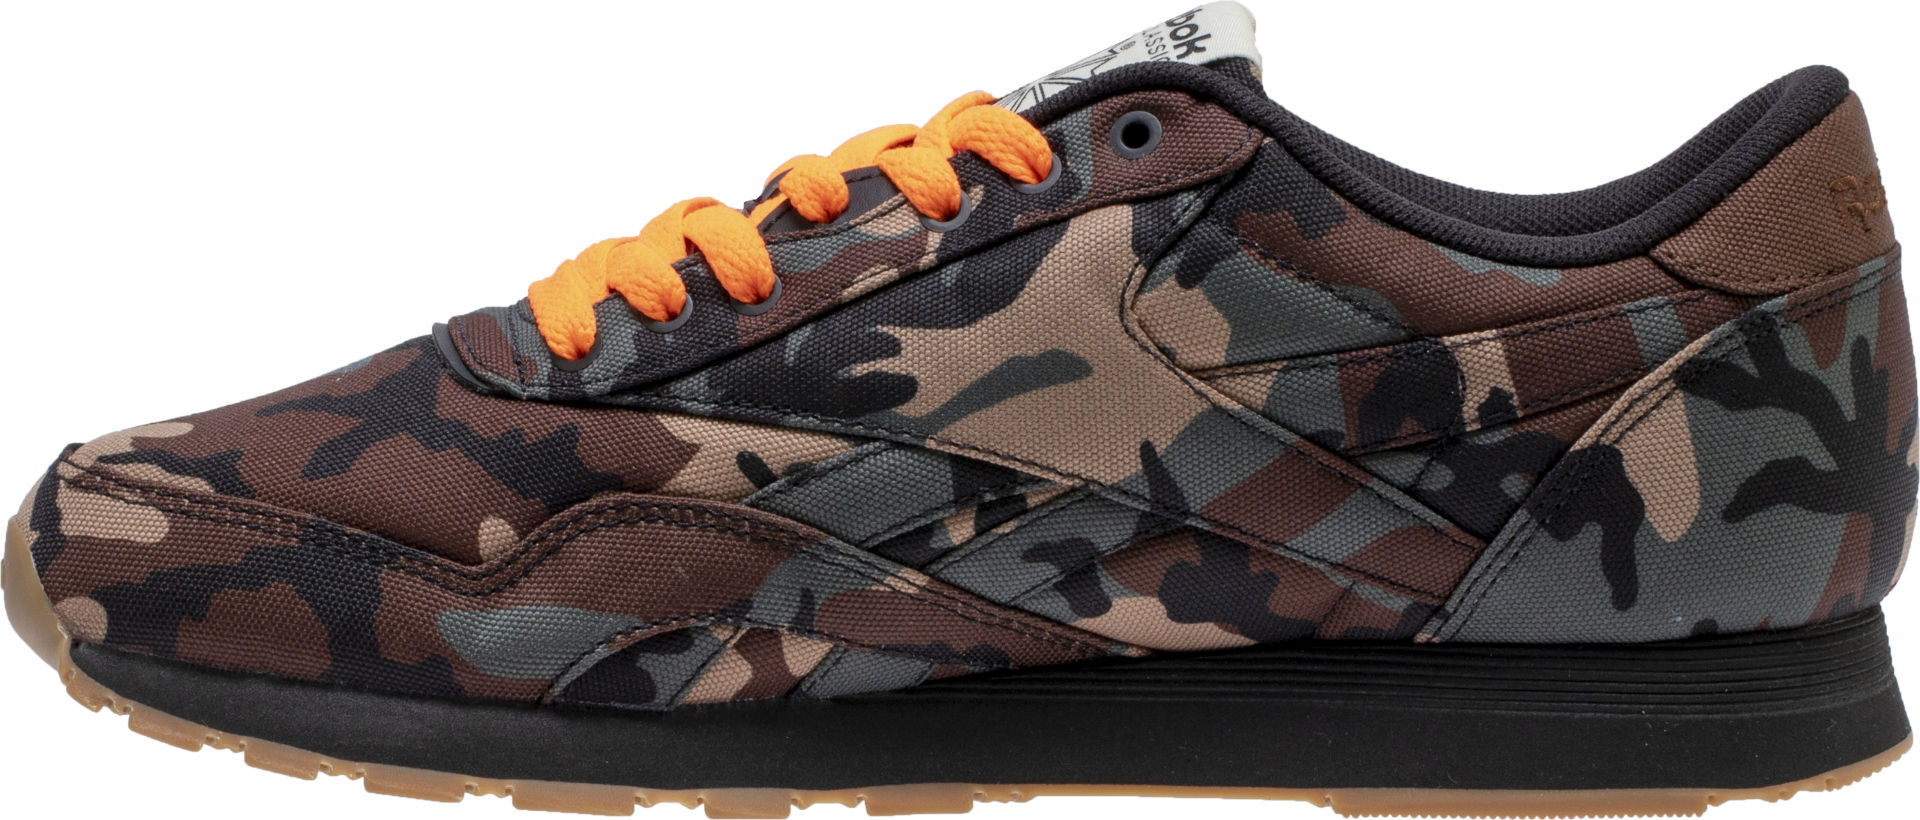 6faef26f510 Shoe Palace X Reebok G.I. Joe Camo Sneaks Launch 6 30 18 - HissTank.com